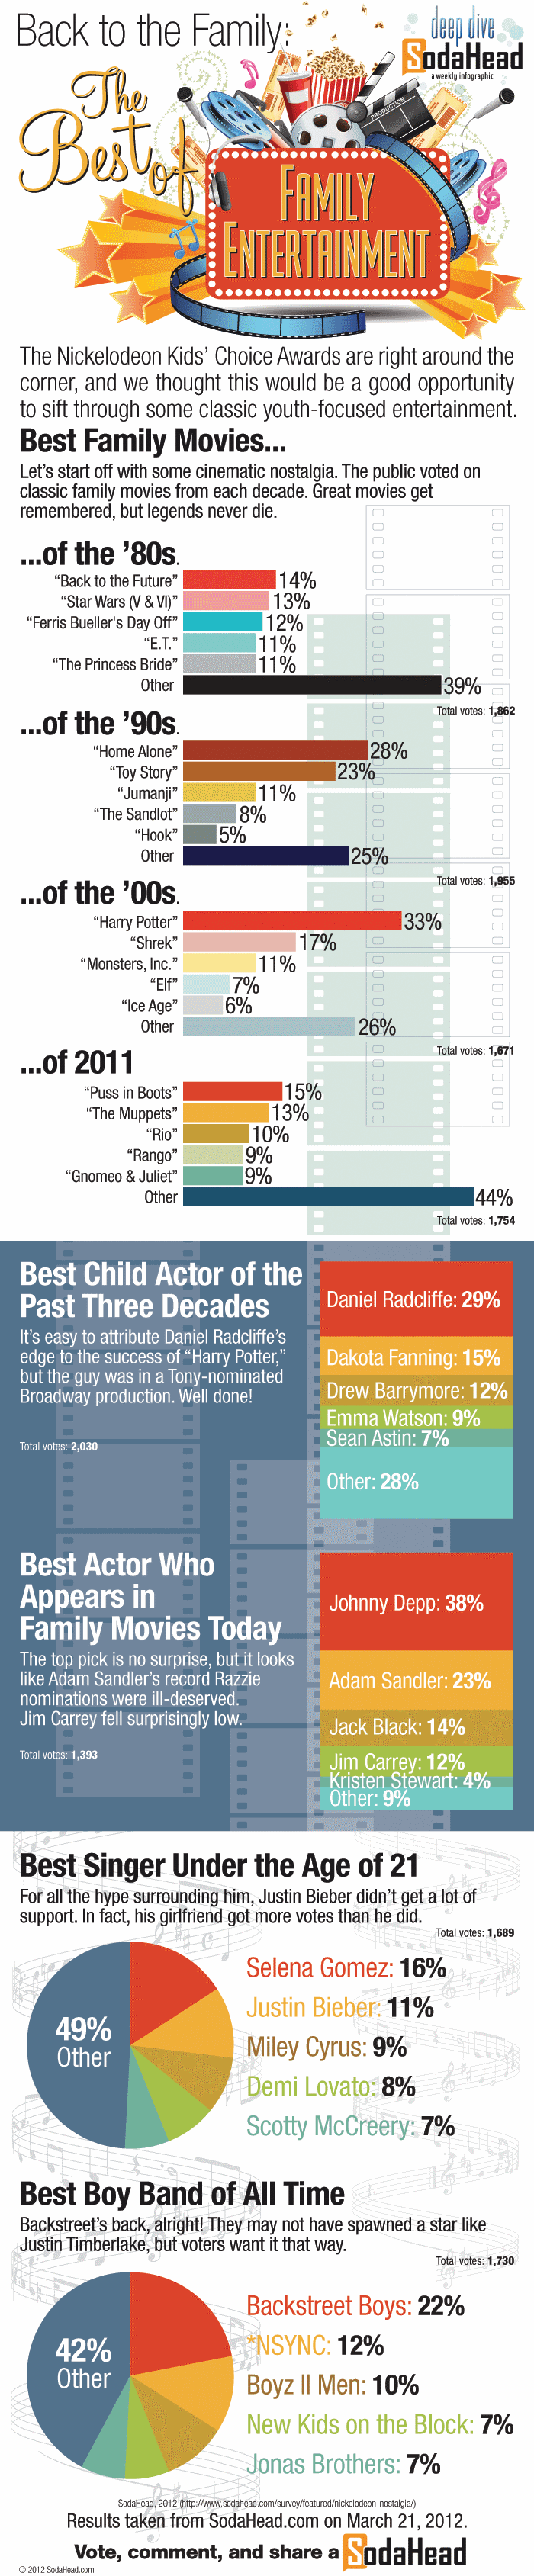 Best of Family Entertainment – SodaHead Infographic